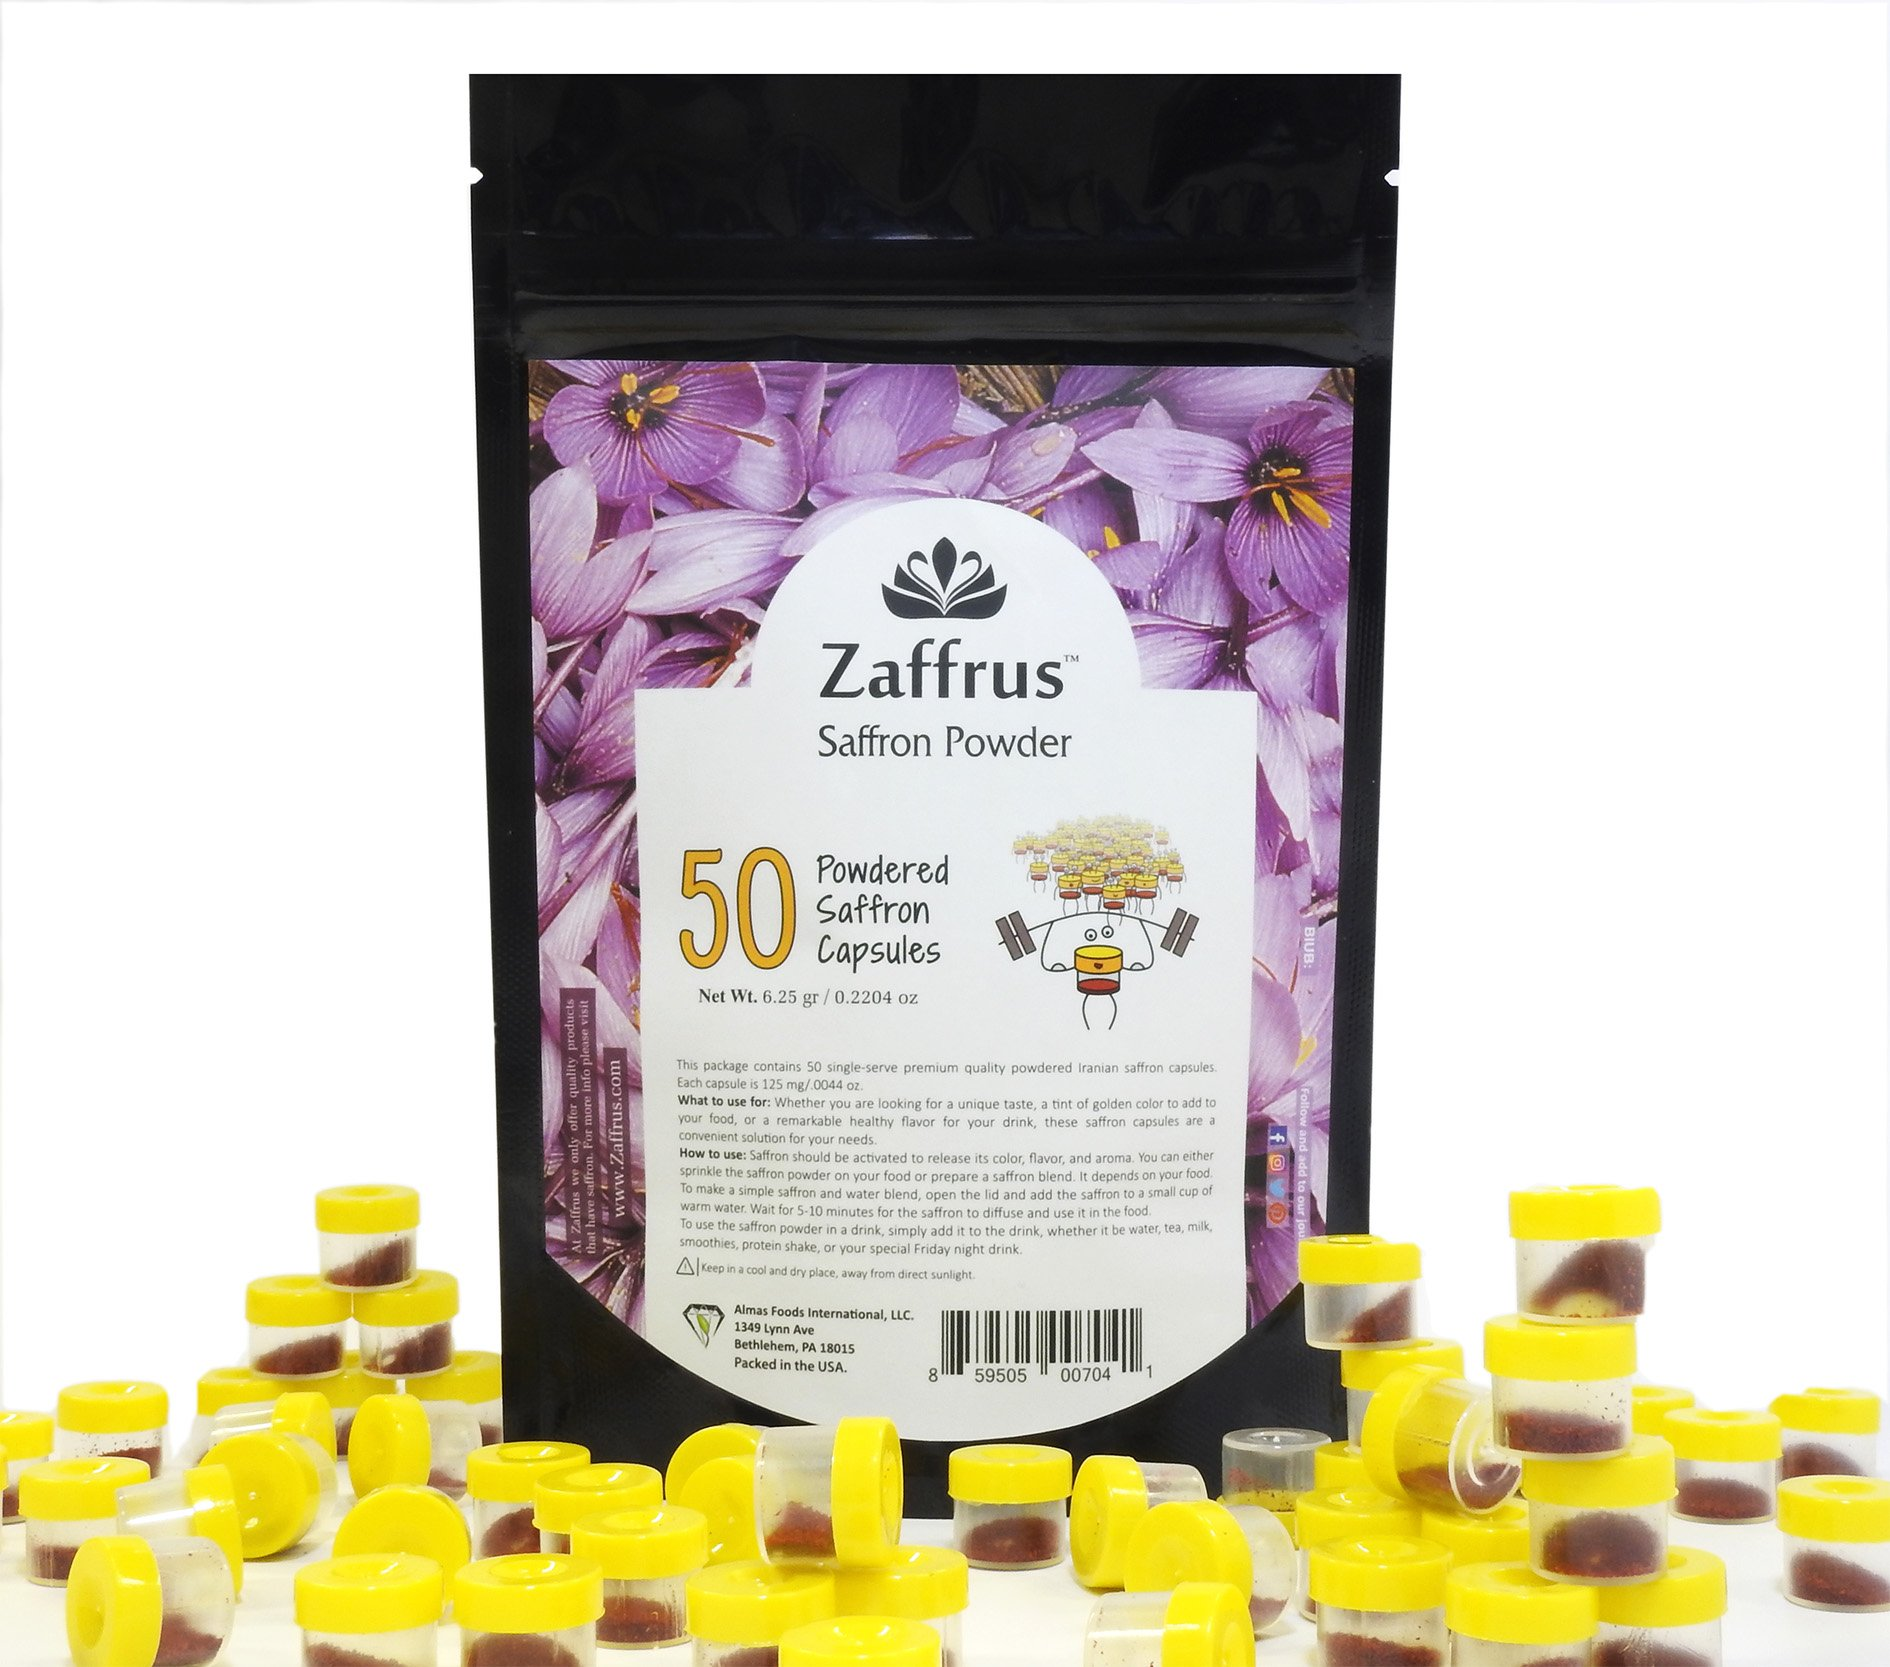 Zaffrus - Premium Saffron Powder for Cooking/Gym-Goers/Specialty Drinks Fans - Pack of 50 (6.25 gr/.2204 oz)